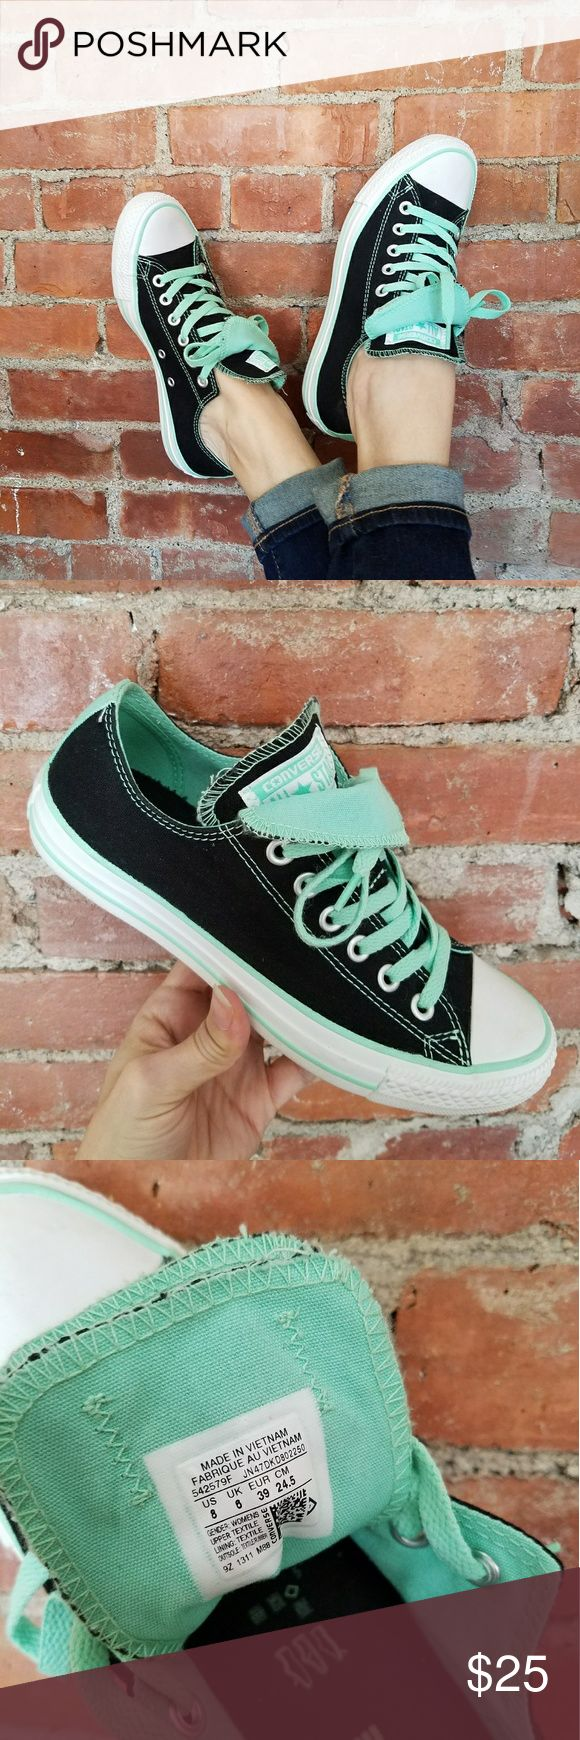 Converse  Double Tongue Chucks A great pair of lady's Chucks too nice to pass up!  These have been gently loved a couple of times,  so they look new!   Double tongue,  how do you style your All Stars?!  These have options! Converse Shoes Sneakers